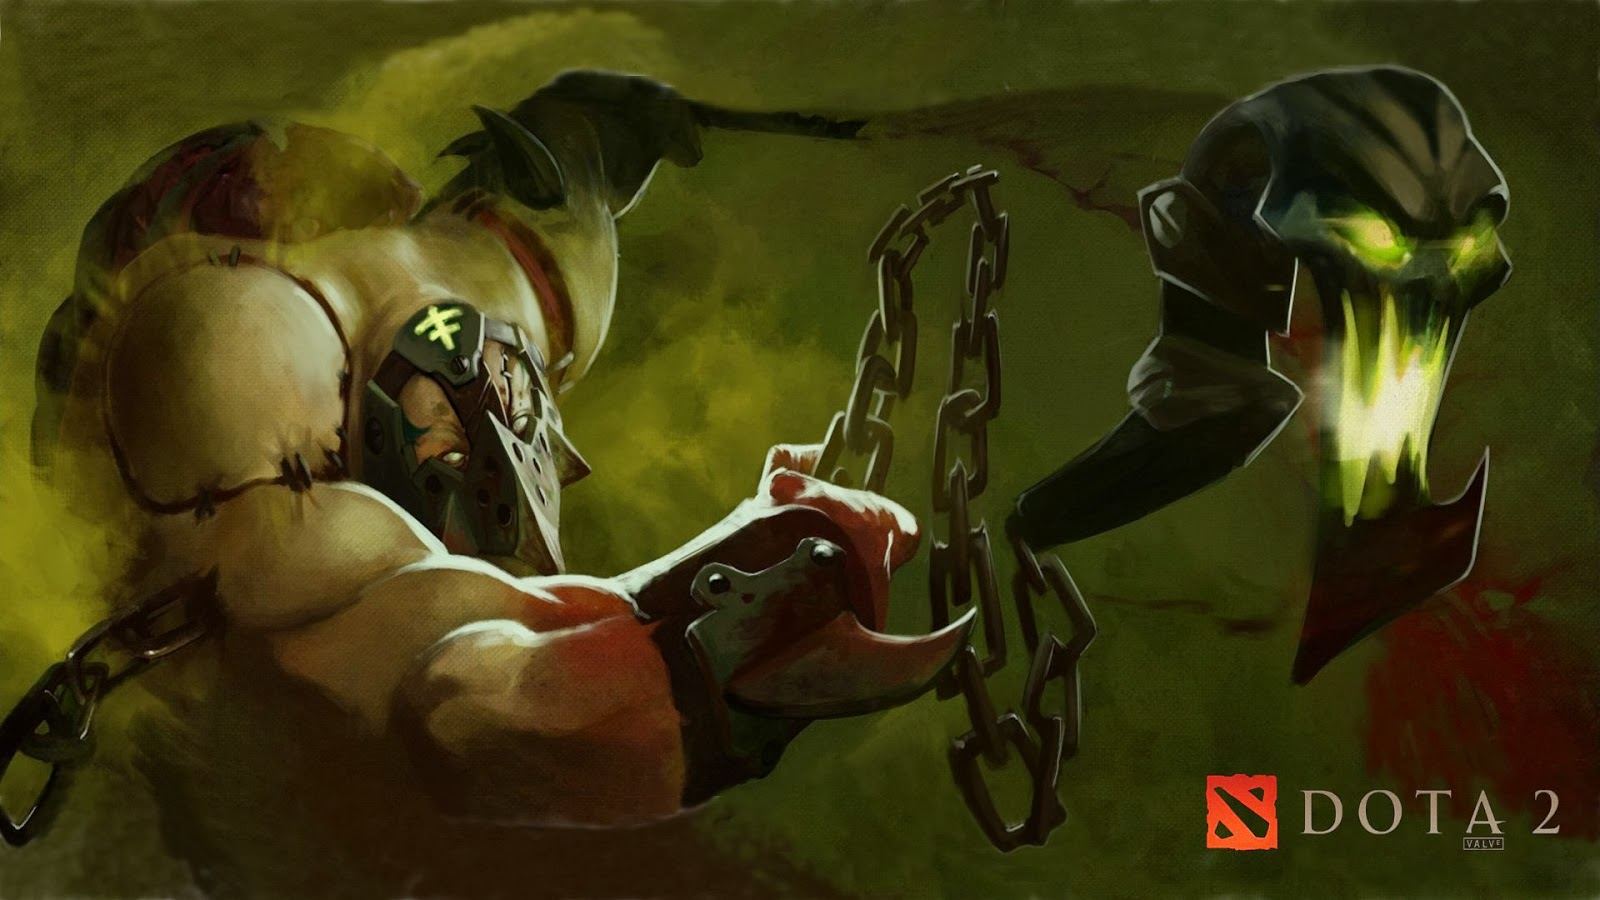 Top 10 Favorite Hero Dota 2